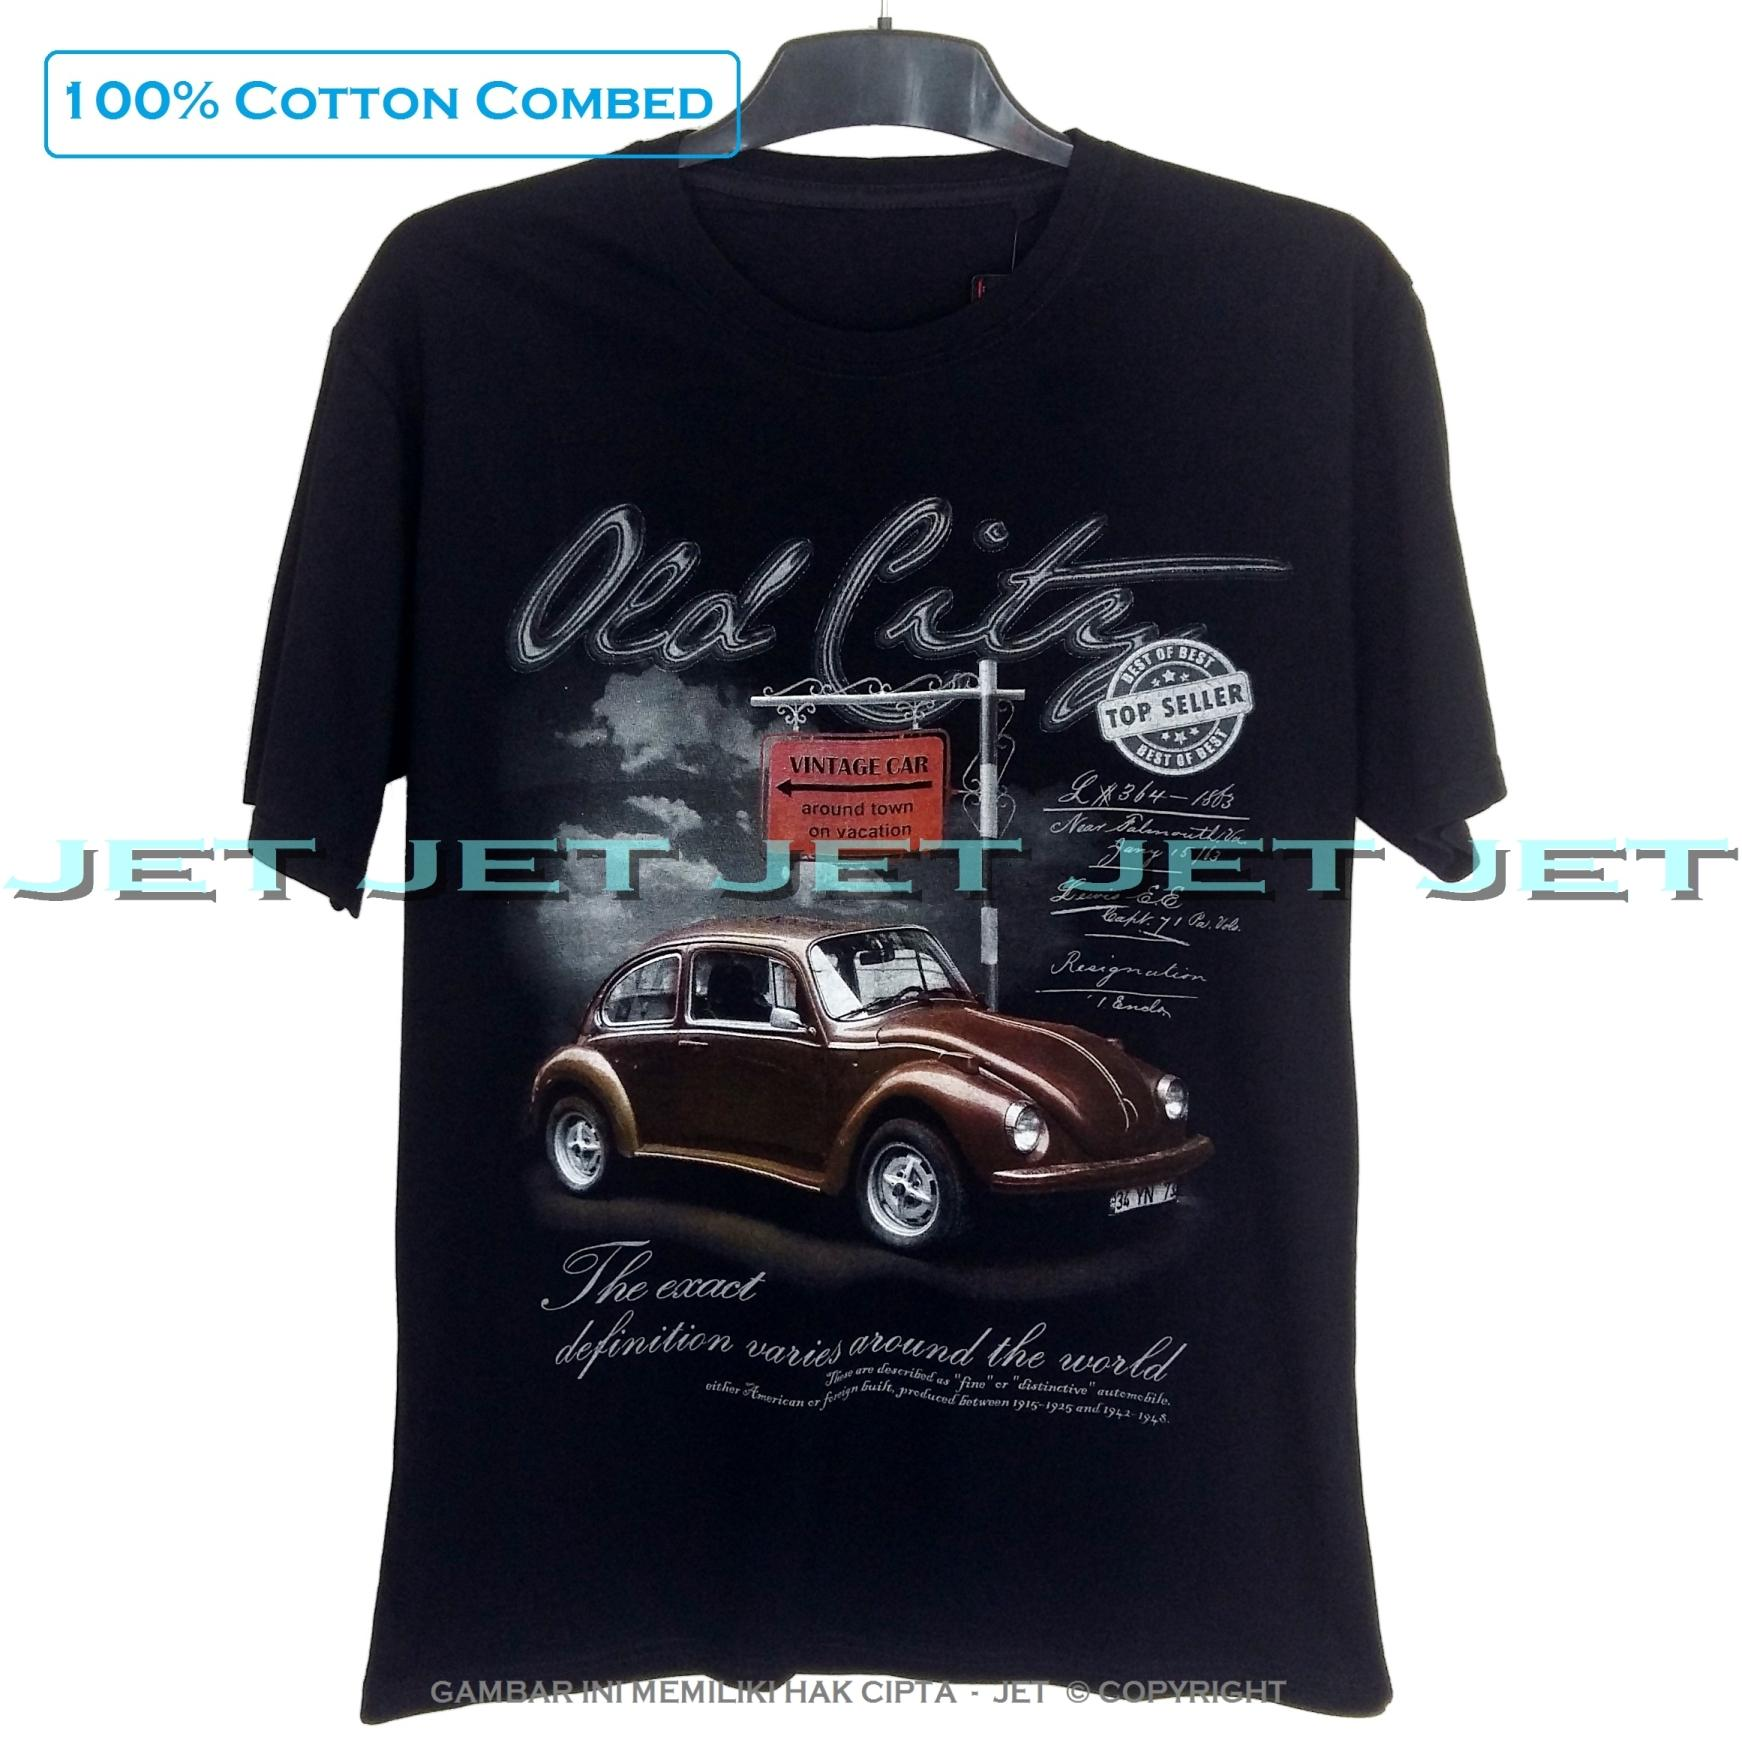 Spectral - VOLKSWAGEN 100% Soft Cotton Combed 30s Kaos Distro Fashion T-Shirt Atasan